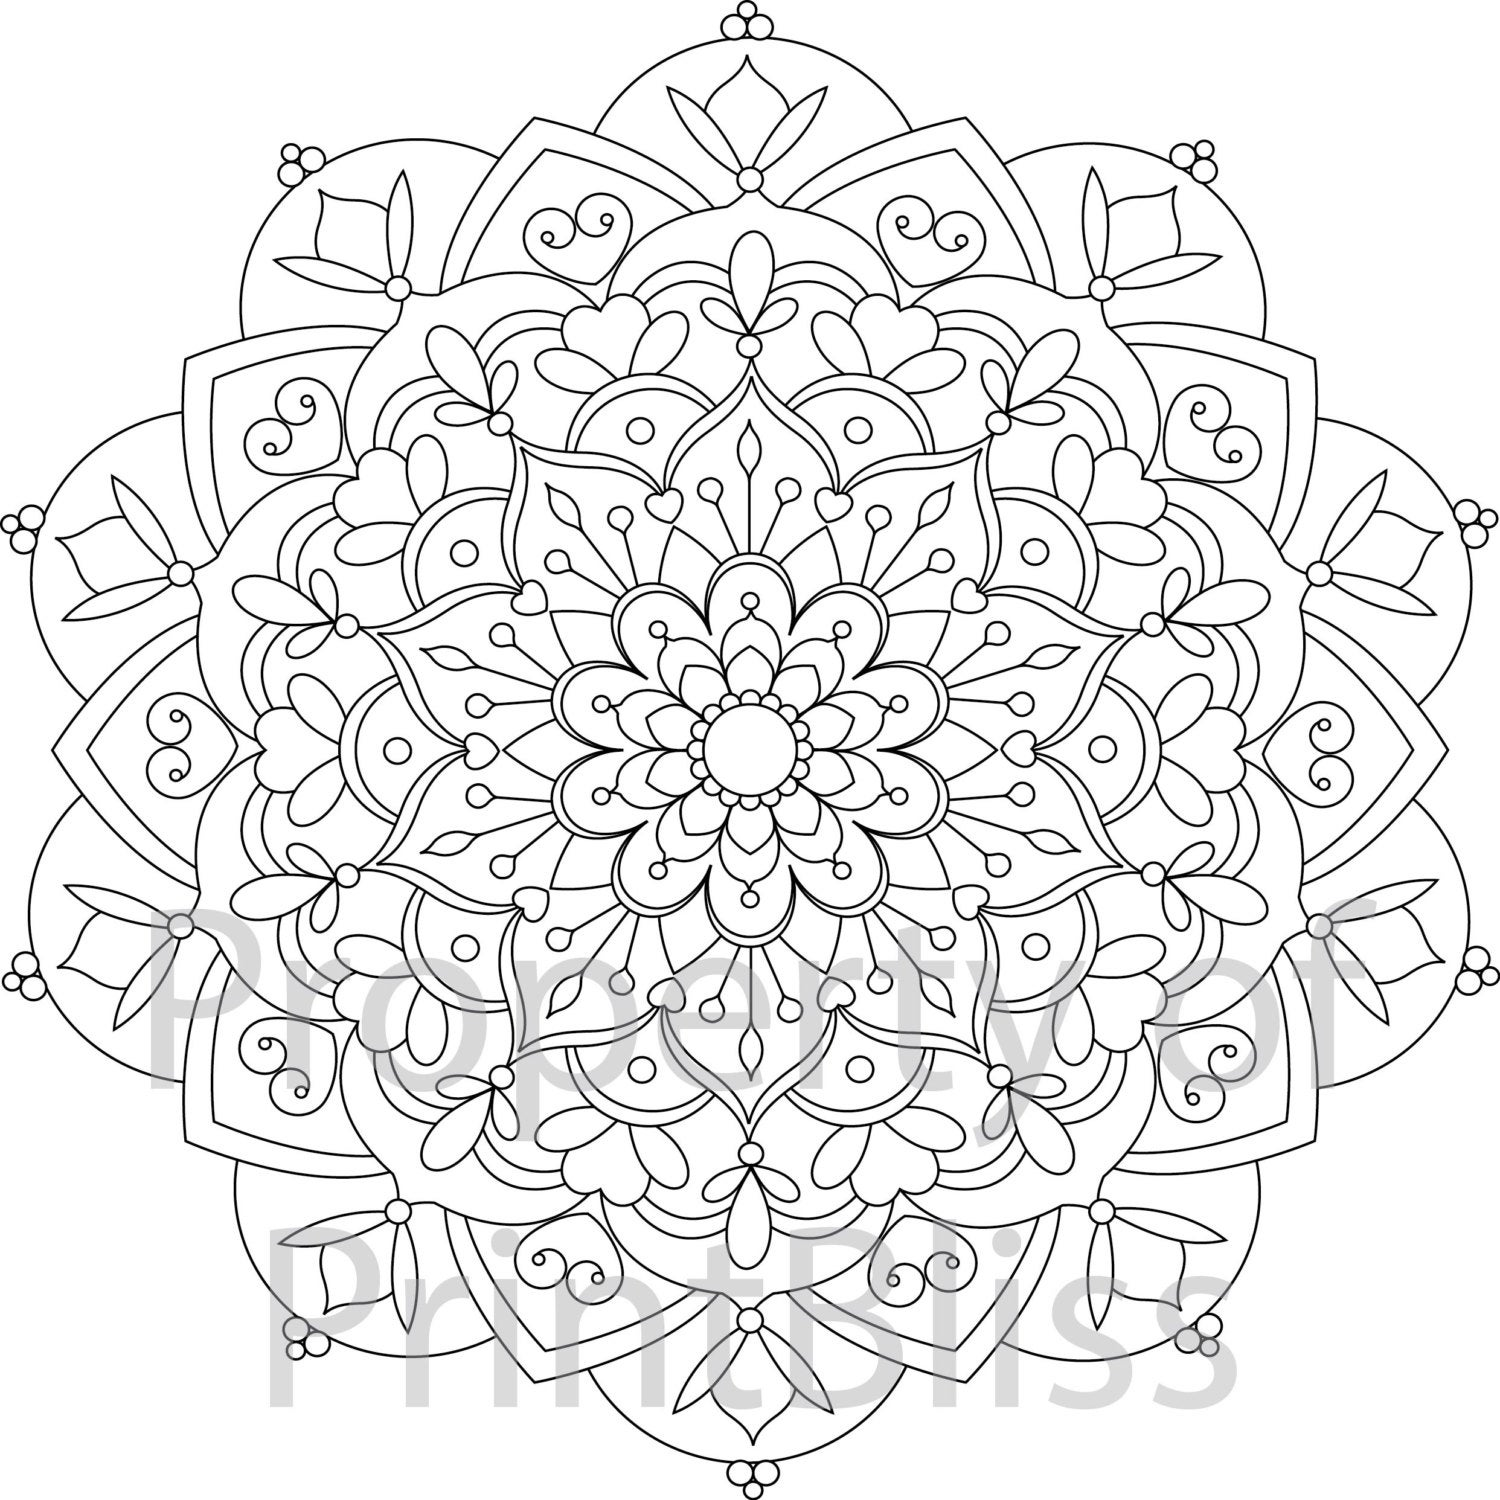 free mandalas to print and color free printable mandalas to colour in the playroom and color to free print mandalas